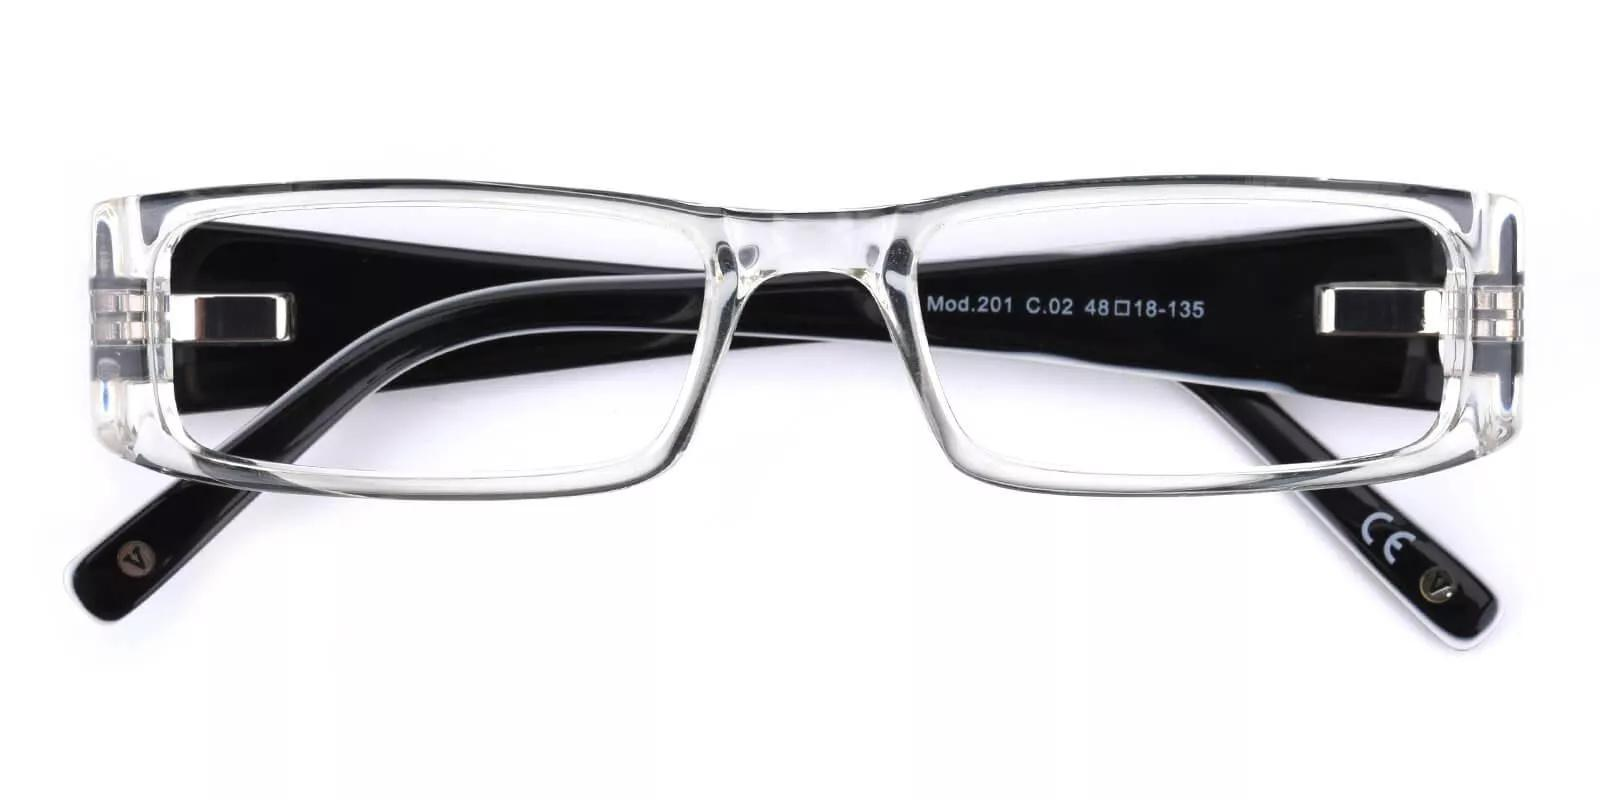 Violet Translucent Acetate Eyeglasses , UniversalBridgeFit Frames from ABBE Glasses